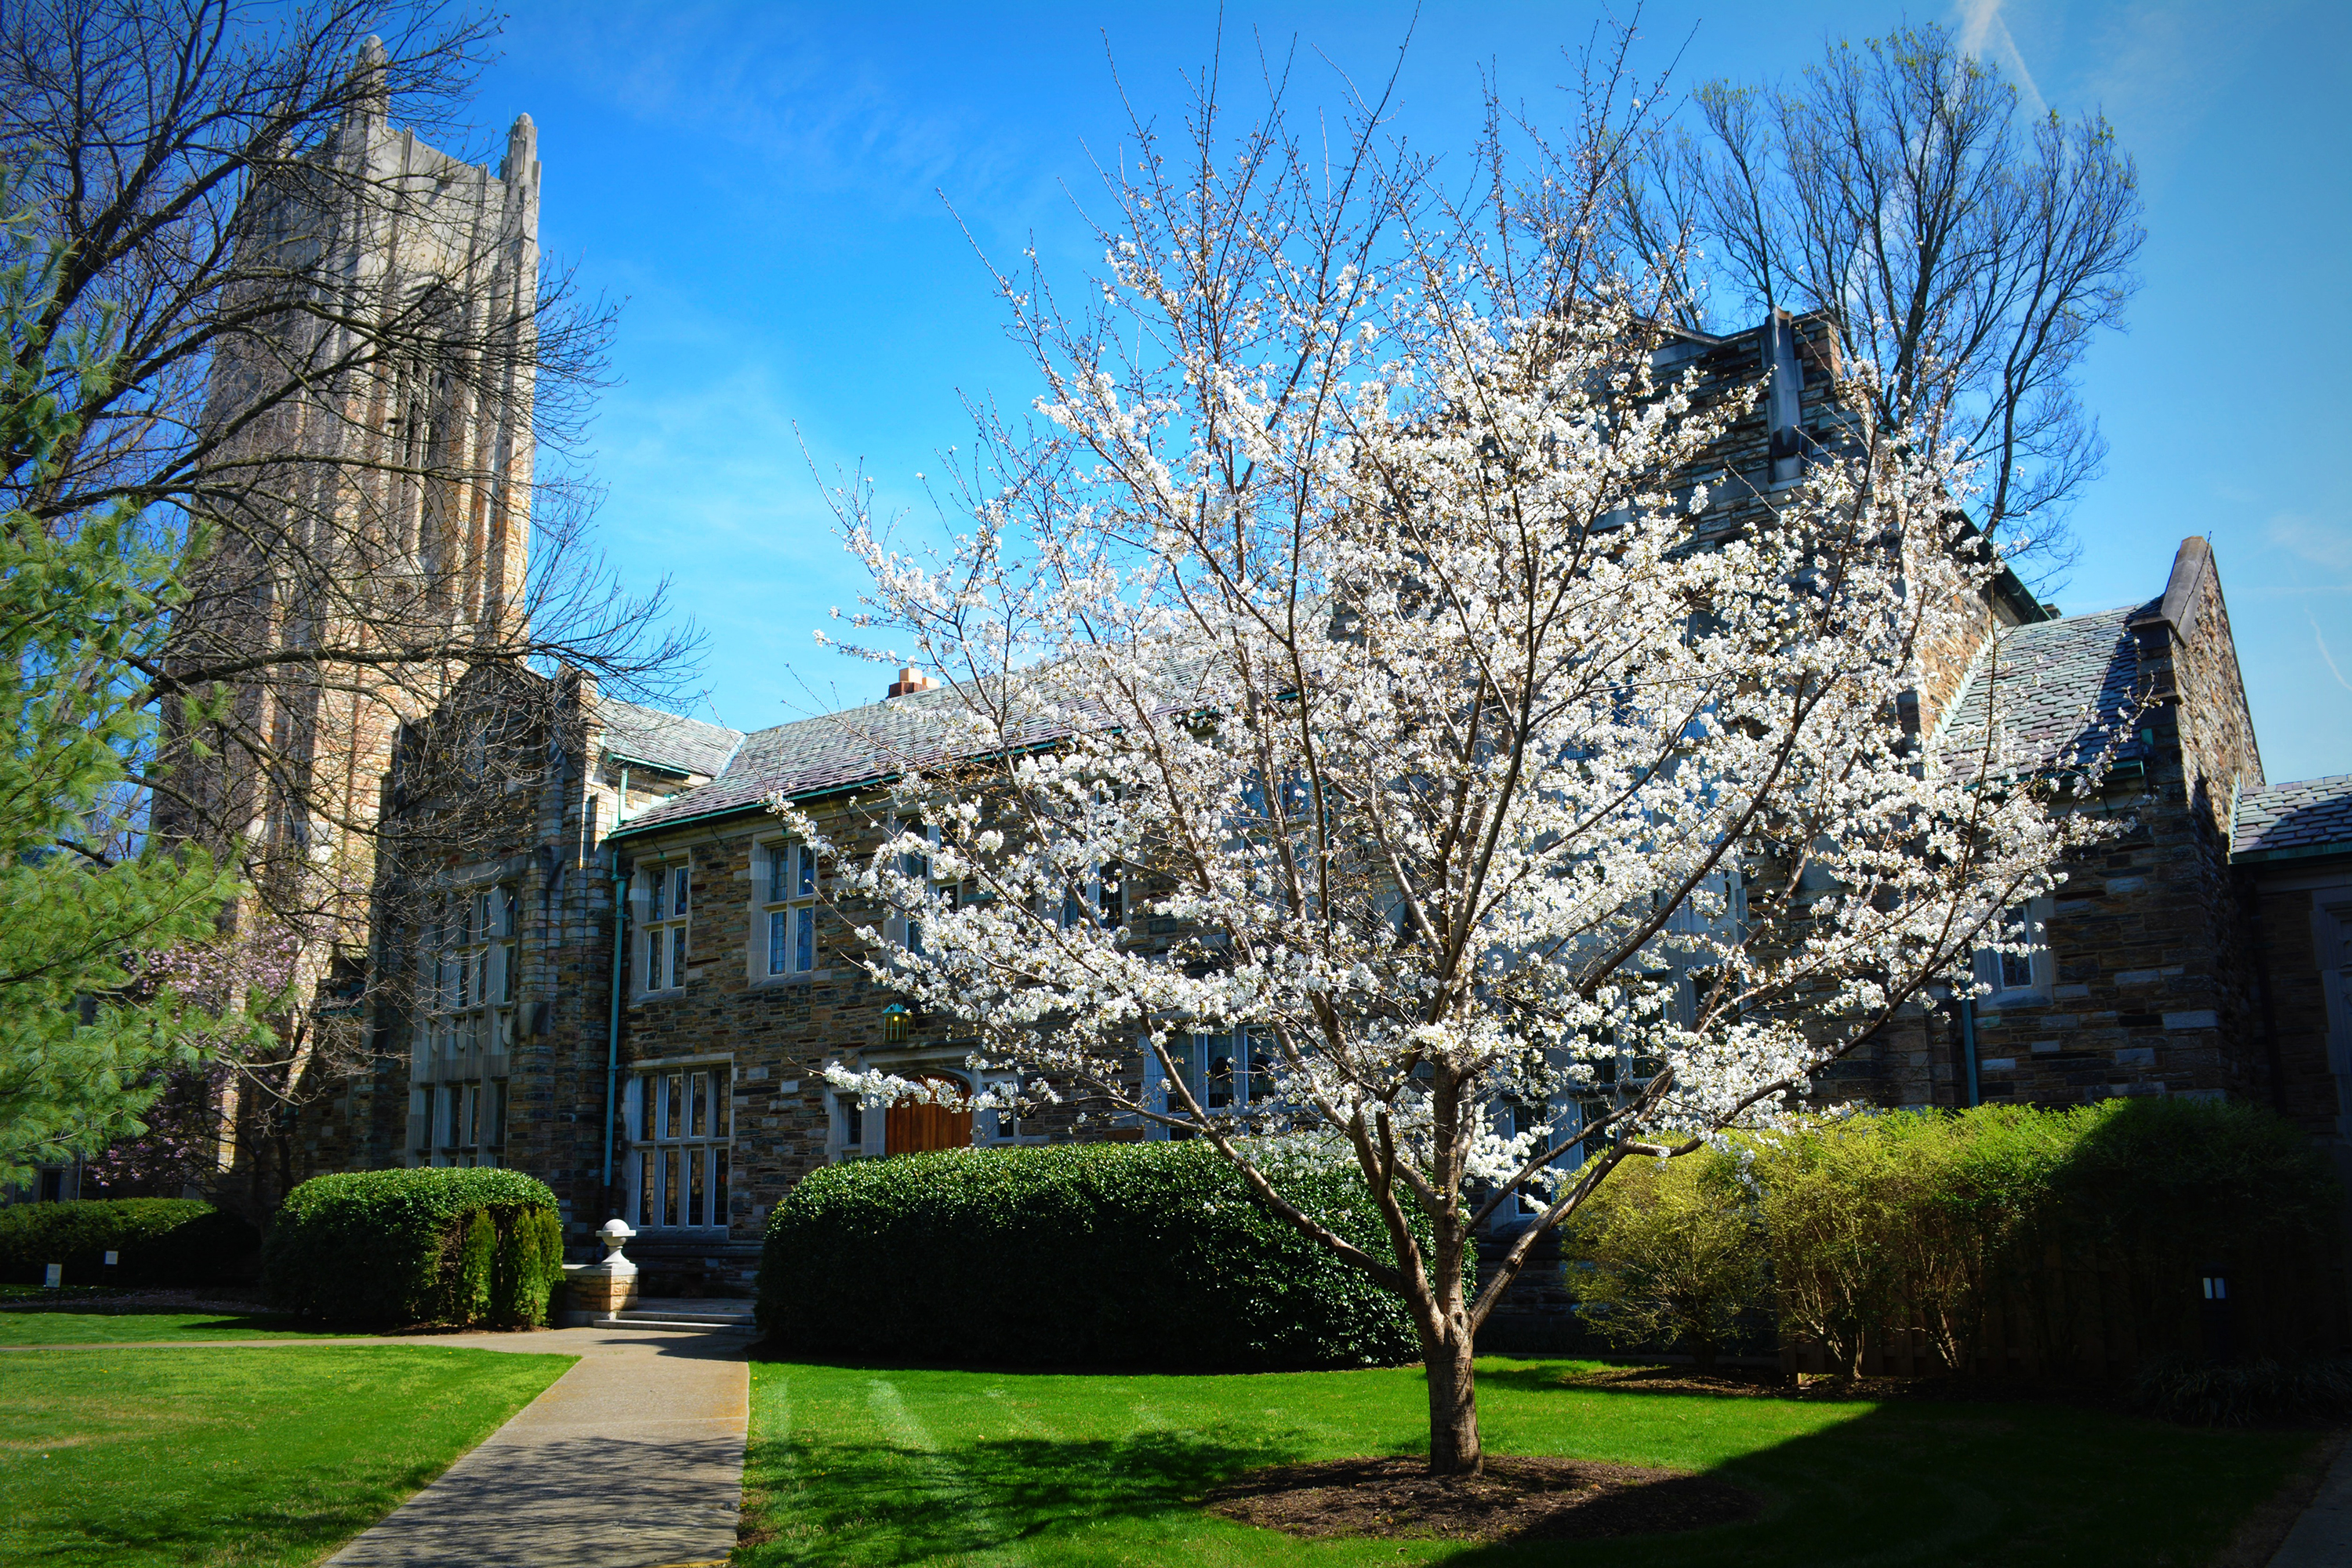 dogwood tree in front of stone building